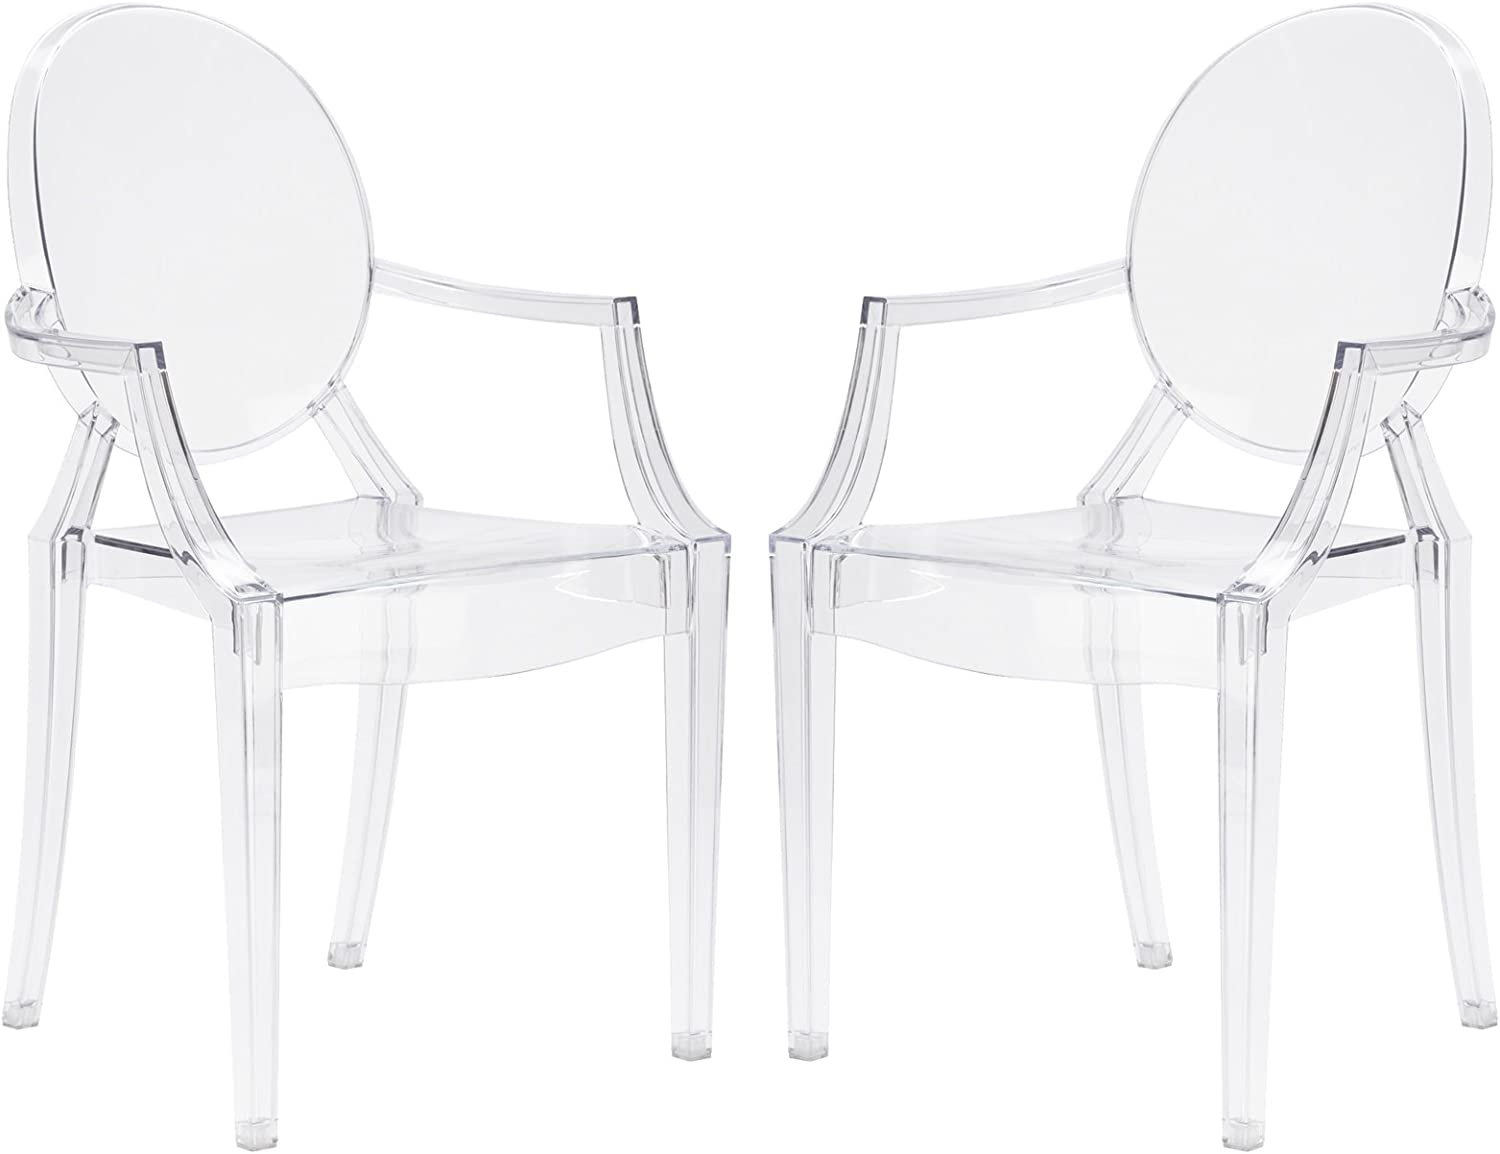 Poly and Bark Burton Arm Plastic Dining and Patio Ghost Chair, Stackable, Fully Assembled,Suitable for Indoor & Outdoor, Clear (Set of 2)